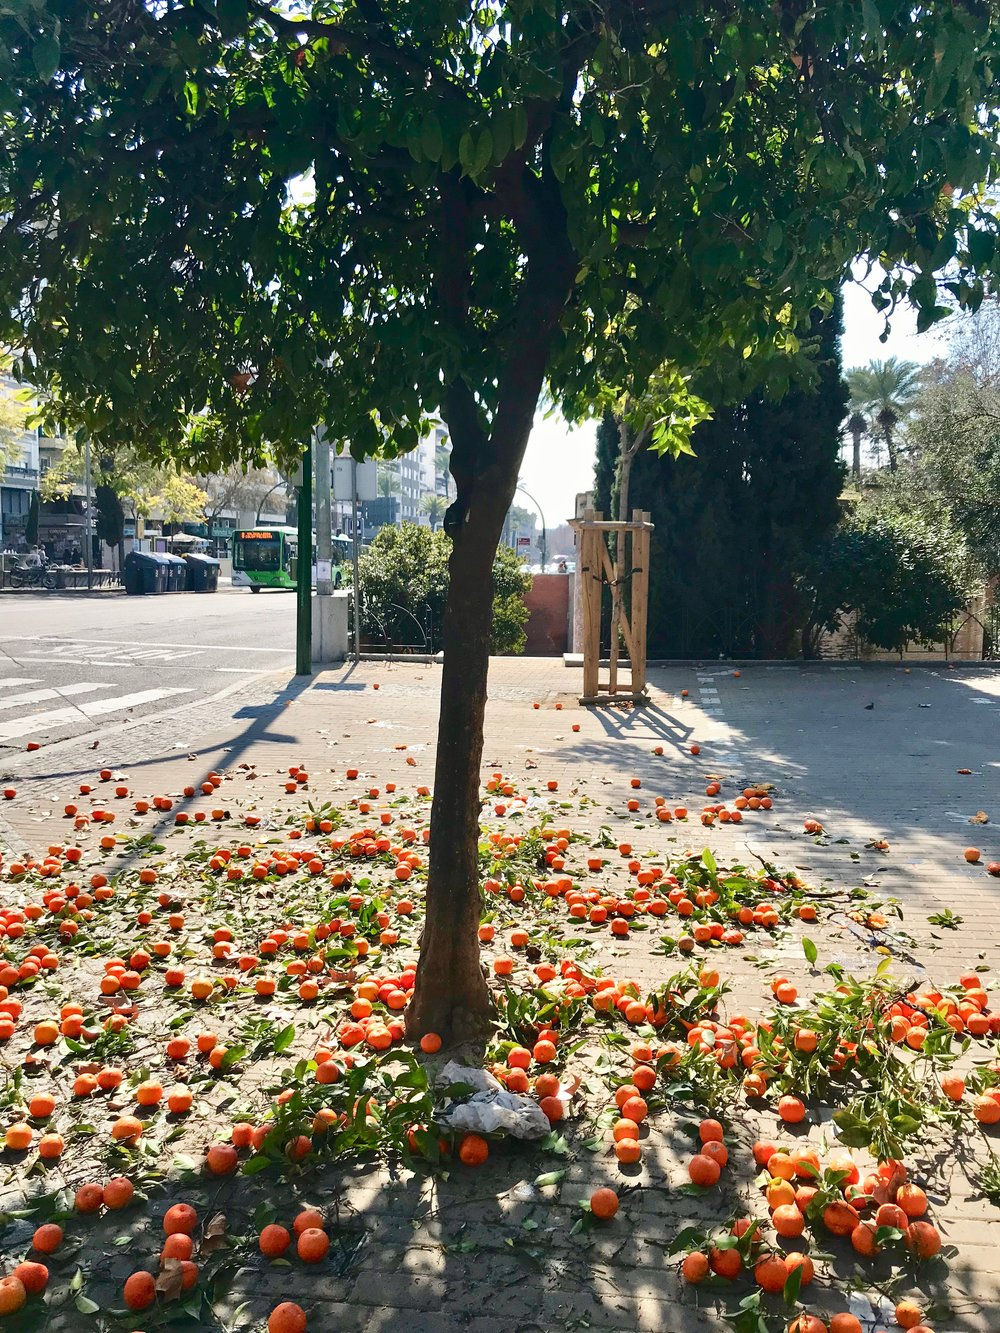 There are orange trees ( naranjos ) everywhere here, which is one of my absolute favorite things about Andalucía. The oranges are too bitter to eat, so the city collects them and uses them for marmalades, perfumes, and other products.